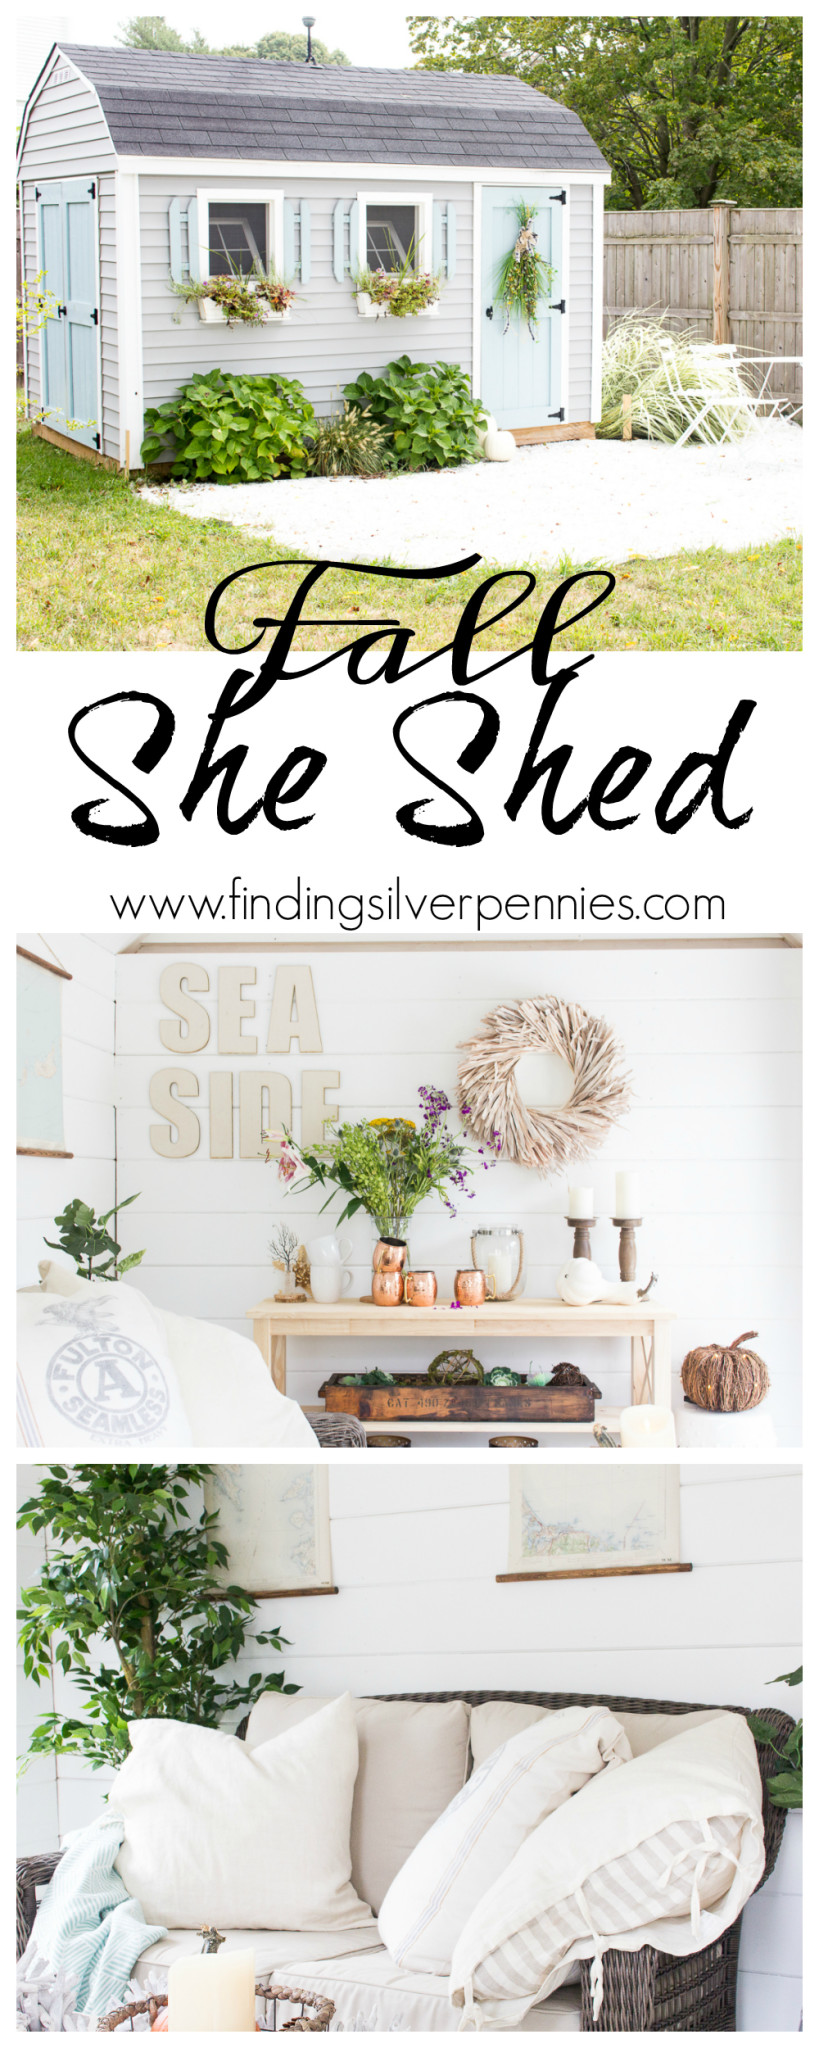 Fall in the She Shed I Finding Silver Pennies I www.findingsilverpennies.com